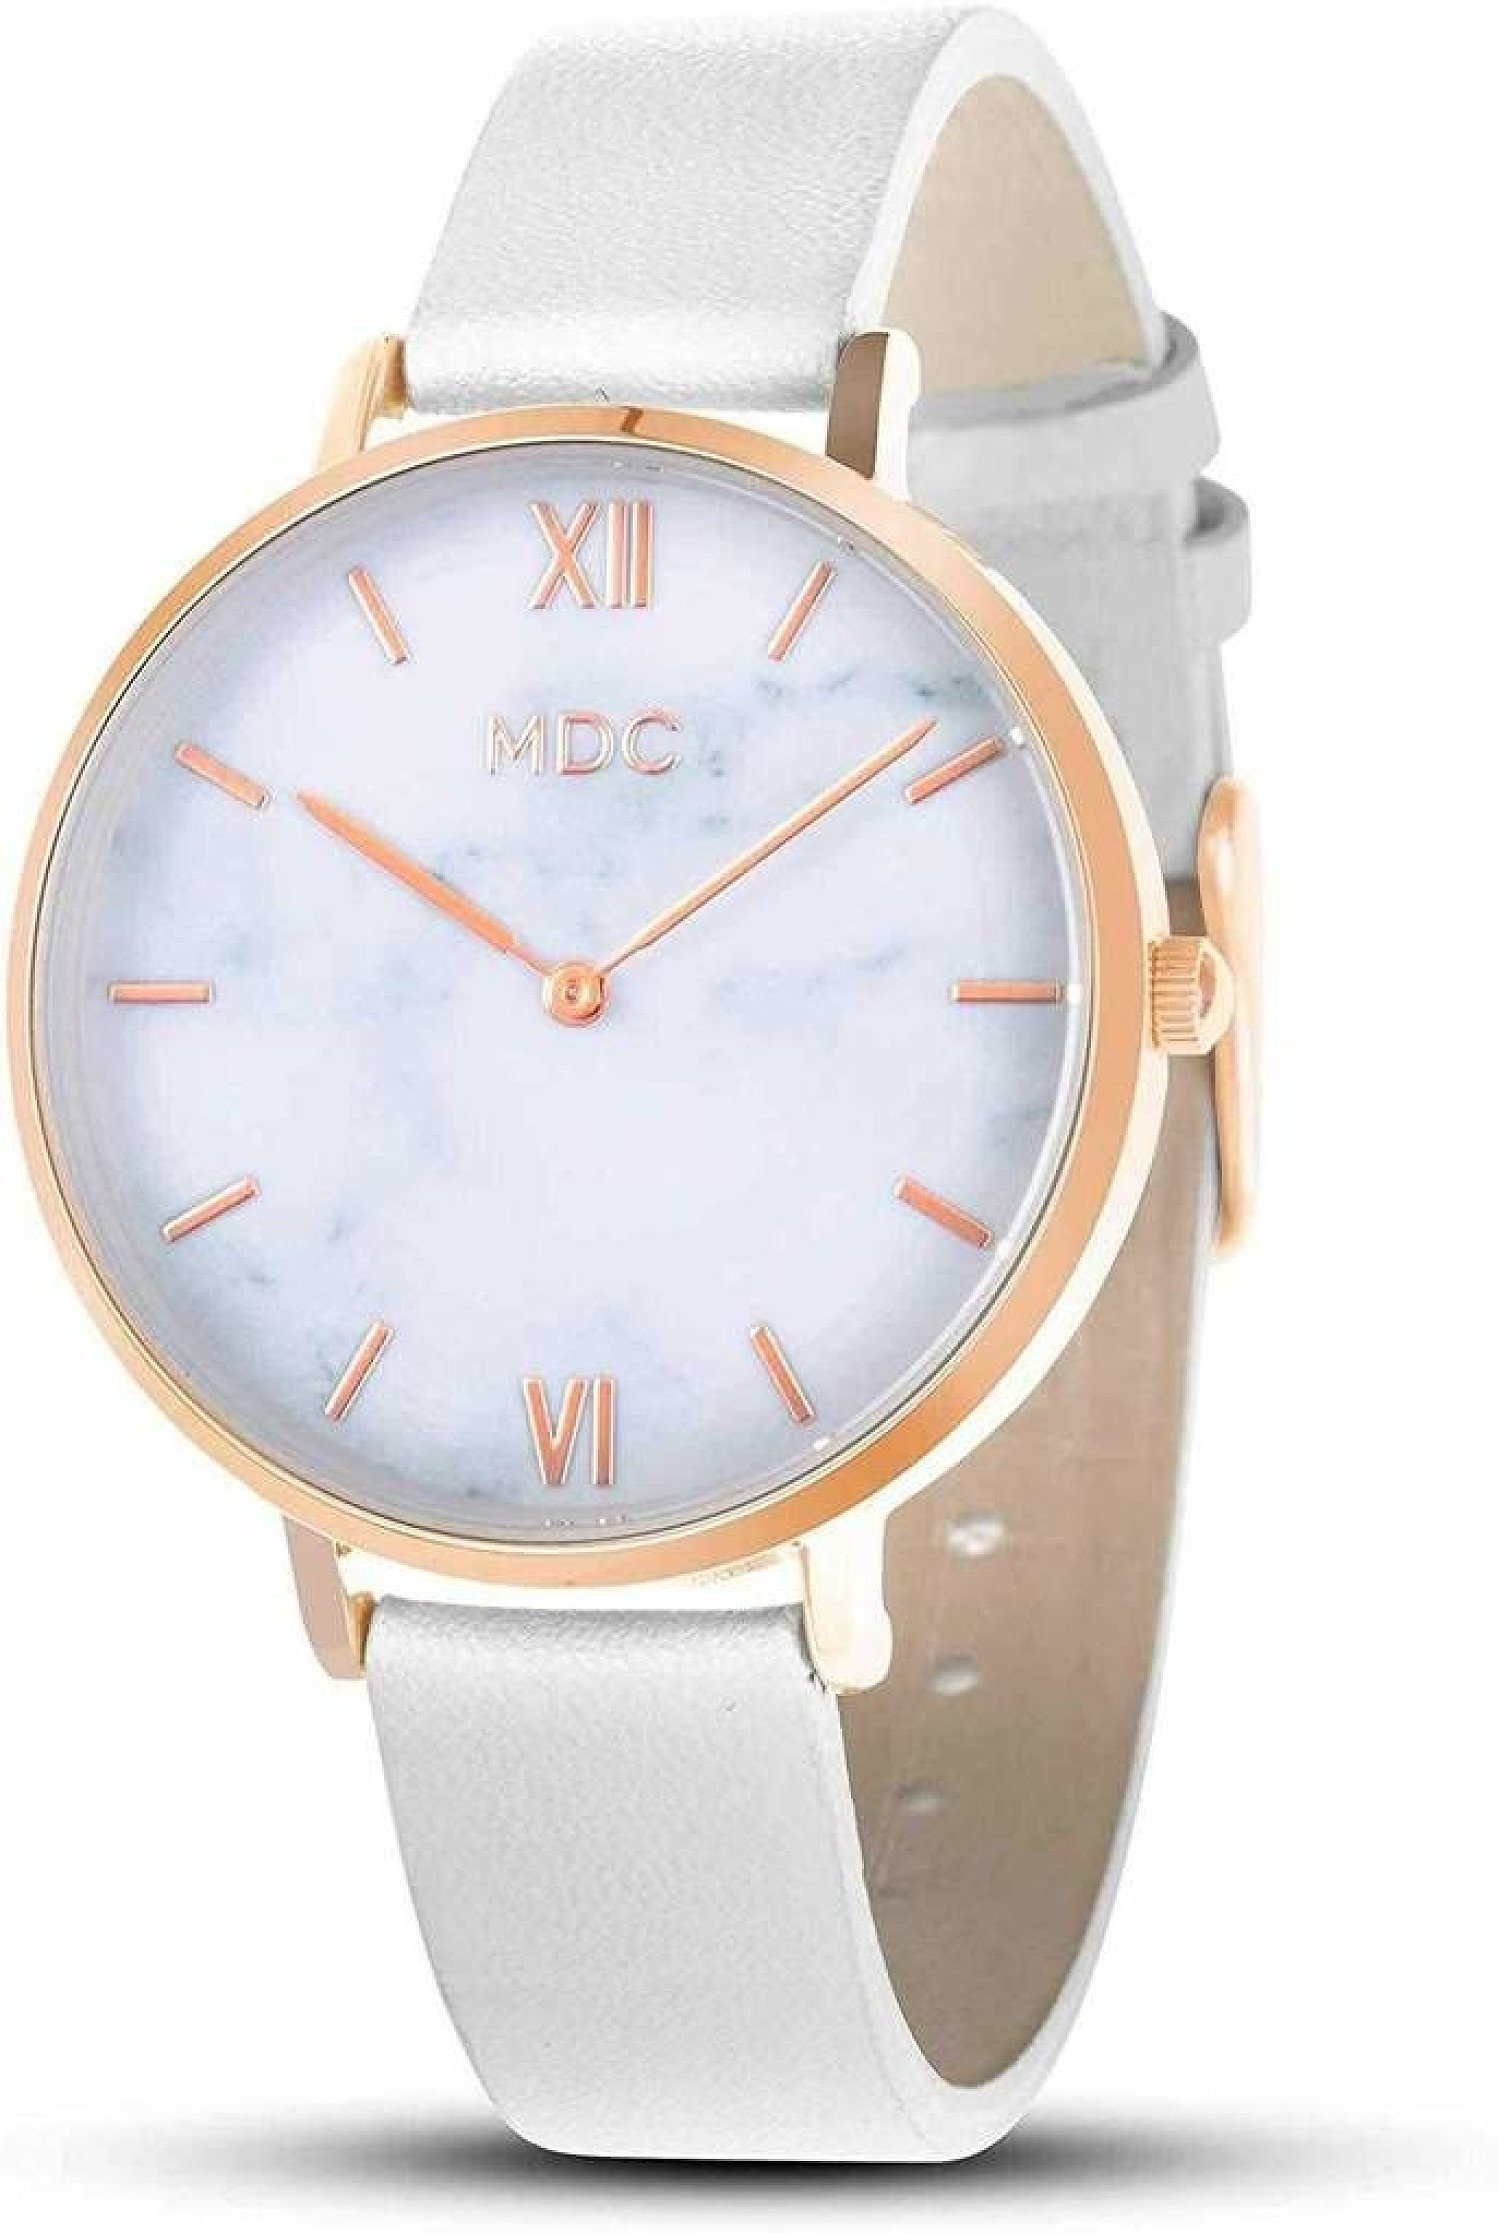 MDC Ladies Minimalist Ultra Thin Wrist Watches Black Starry Sky/White Marble Face Leather Strap